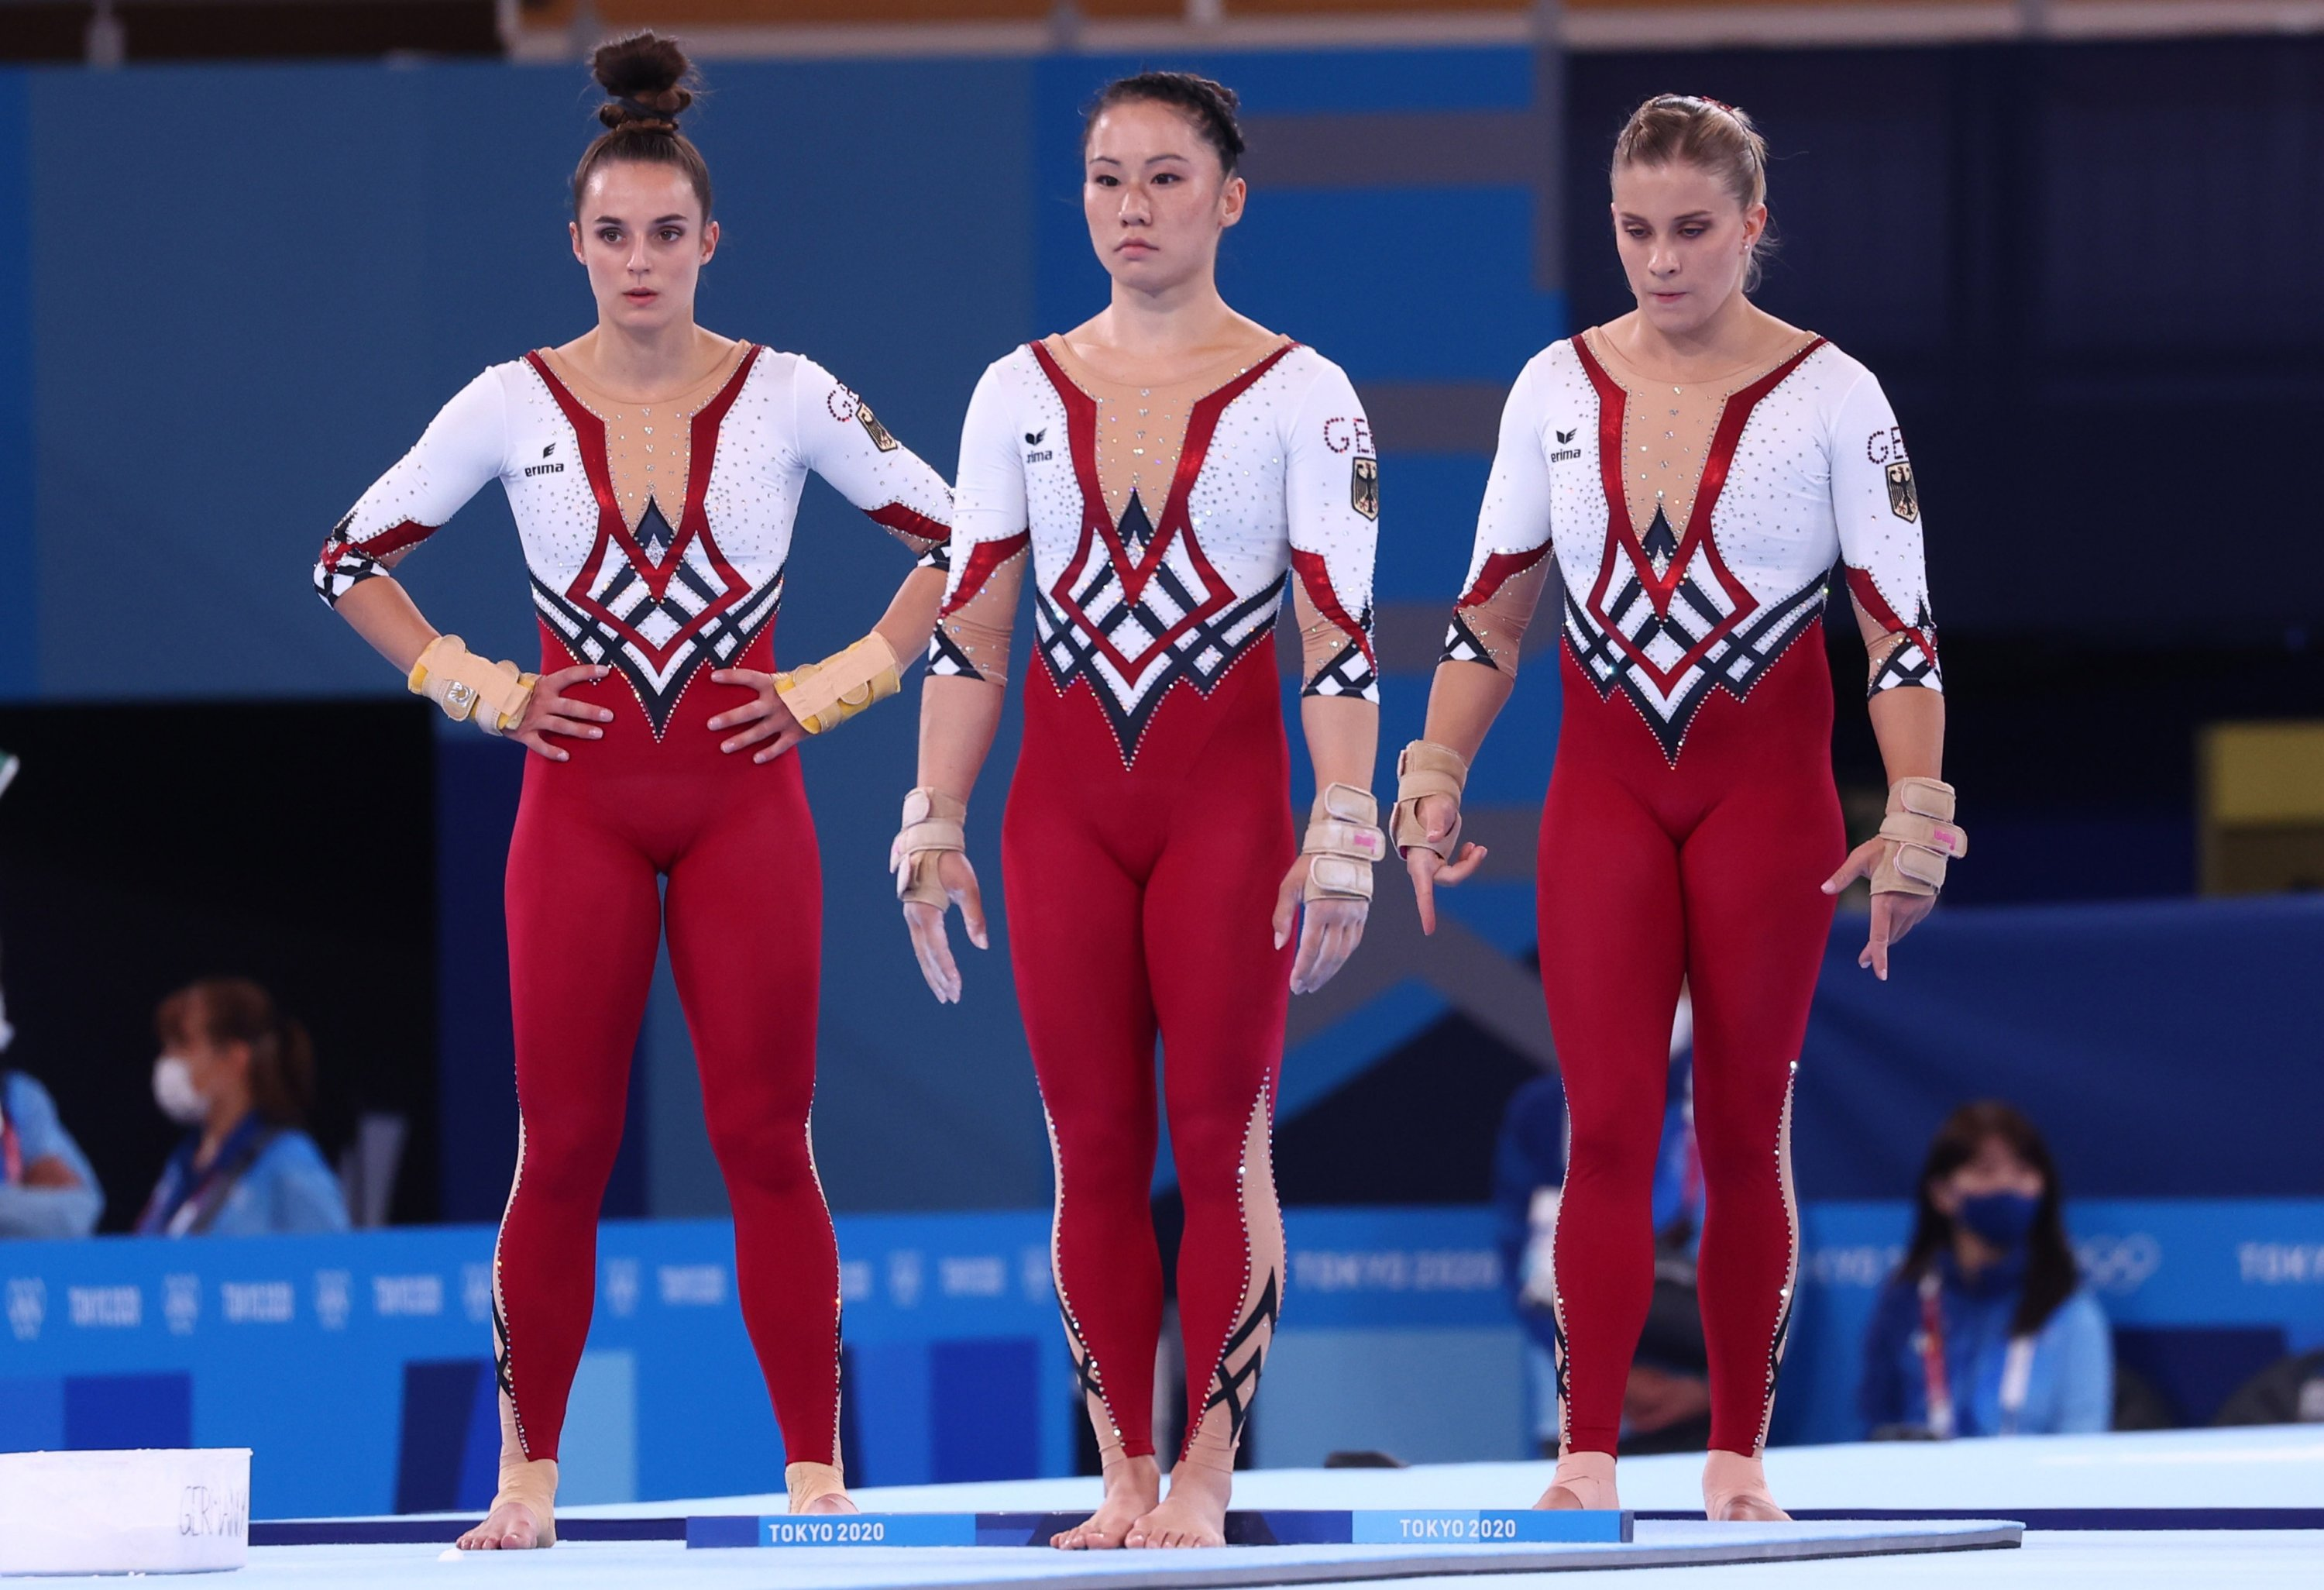 (From L to R) German gymnasts Pauline Schaefer, Kim Bui and Elisabeth Seitz seen in their unitards during a Tokyo 2020 Olympics Gymnastics event at Ariake Gymnastics Centre, Tokyo, Japan, July 25, 2021. (Reuters Photo)